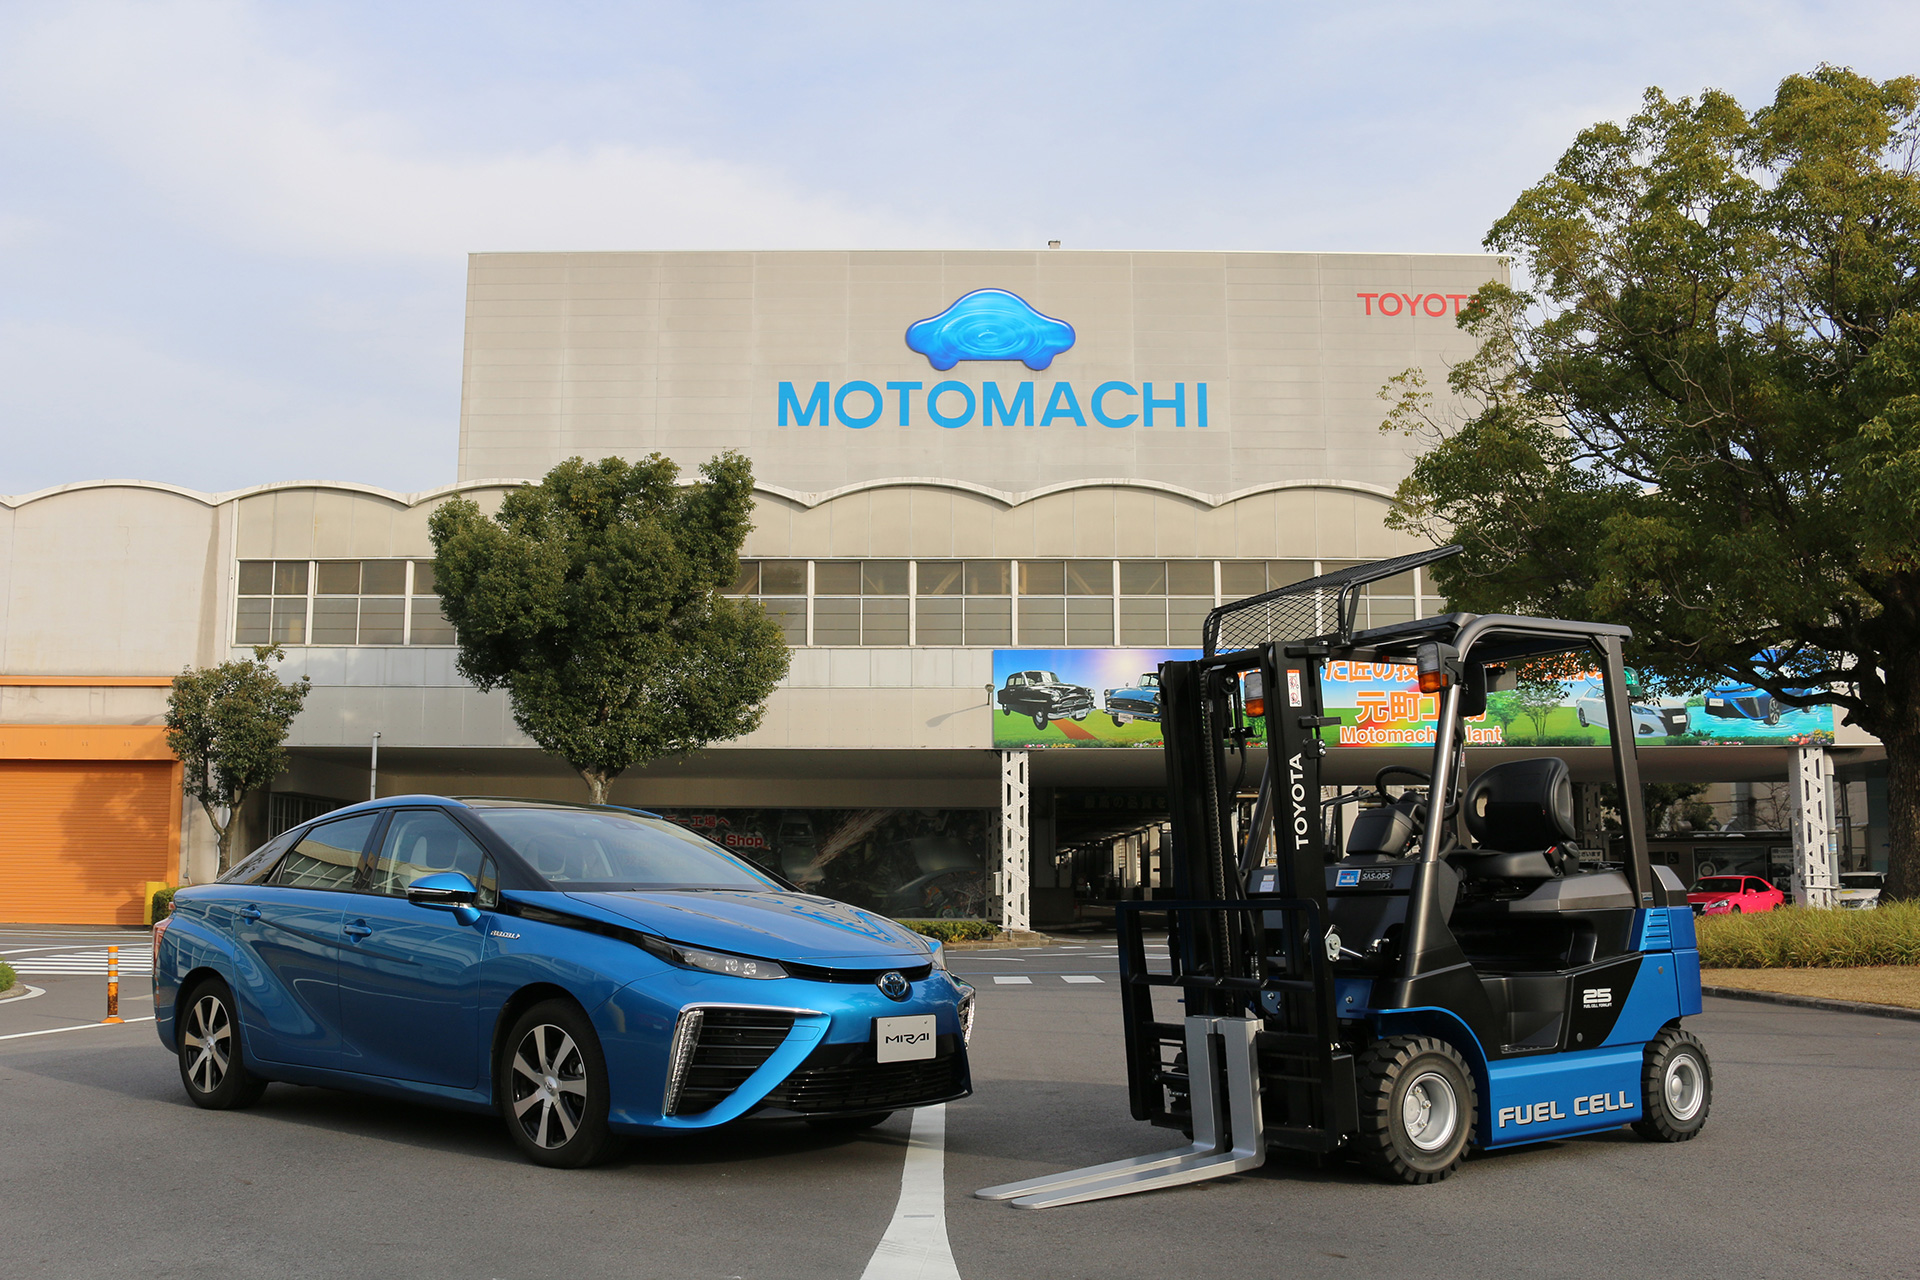 Mirai and Fuel cell forklift